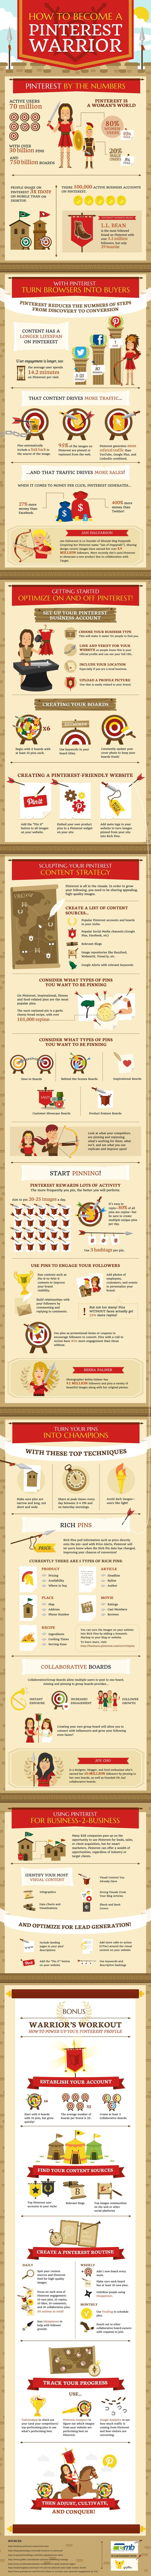 How to Become a Pinterest Warrior: #SocialMedia #Marketing #Pinterest - #Infographic